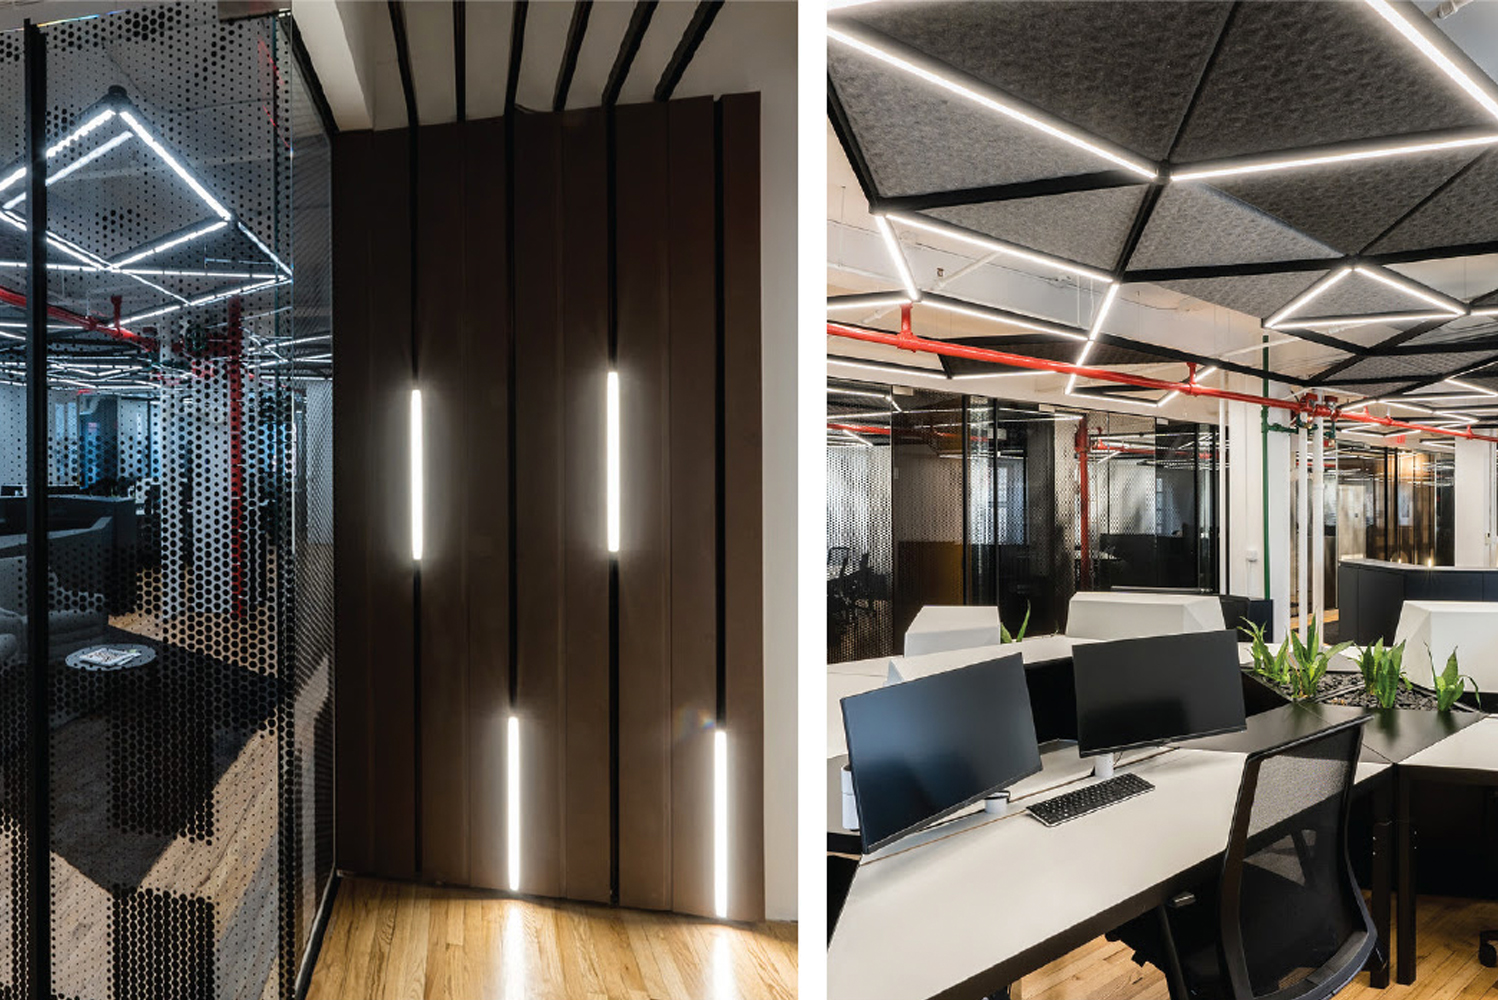 One Node facilitates connections of up to six different channels, enabling all manner of creative ceiling arrangements.